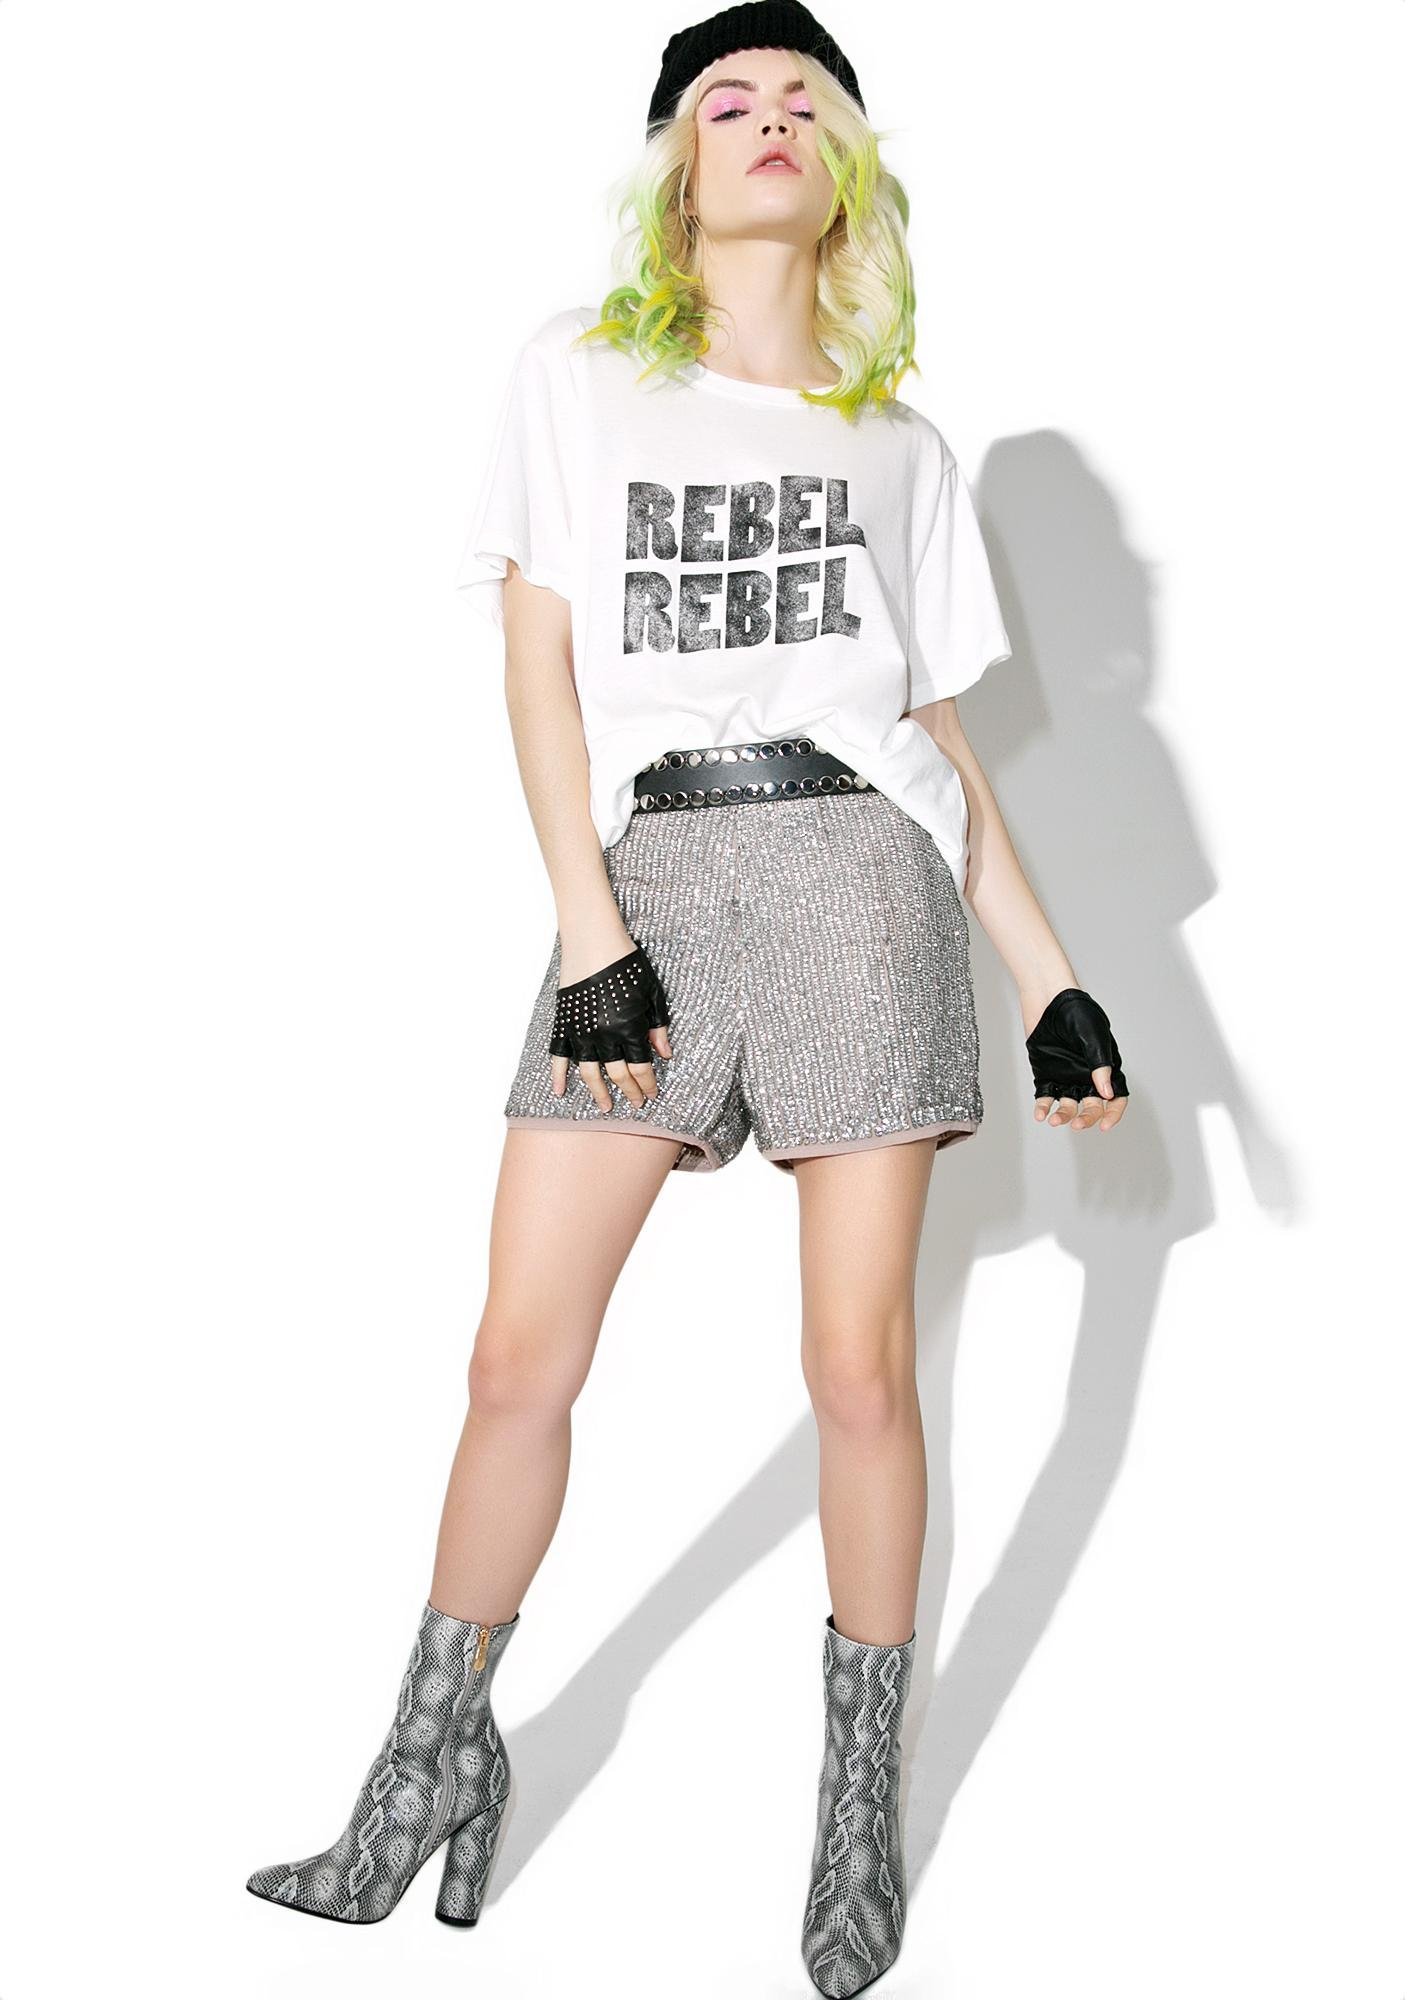 Daydreamer Rebel Rebel Tee